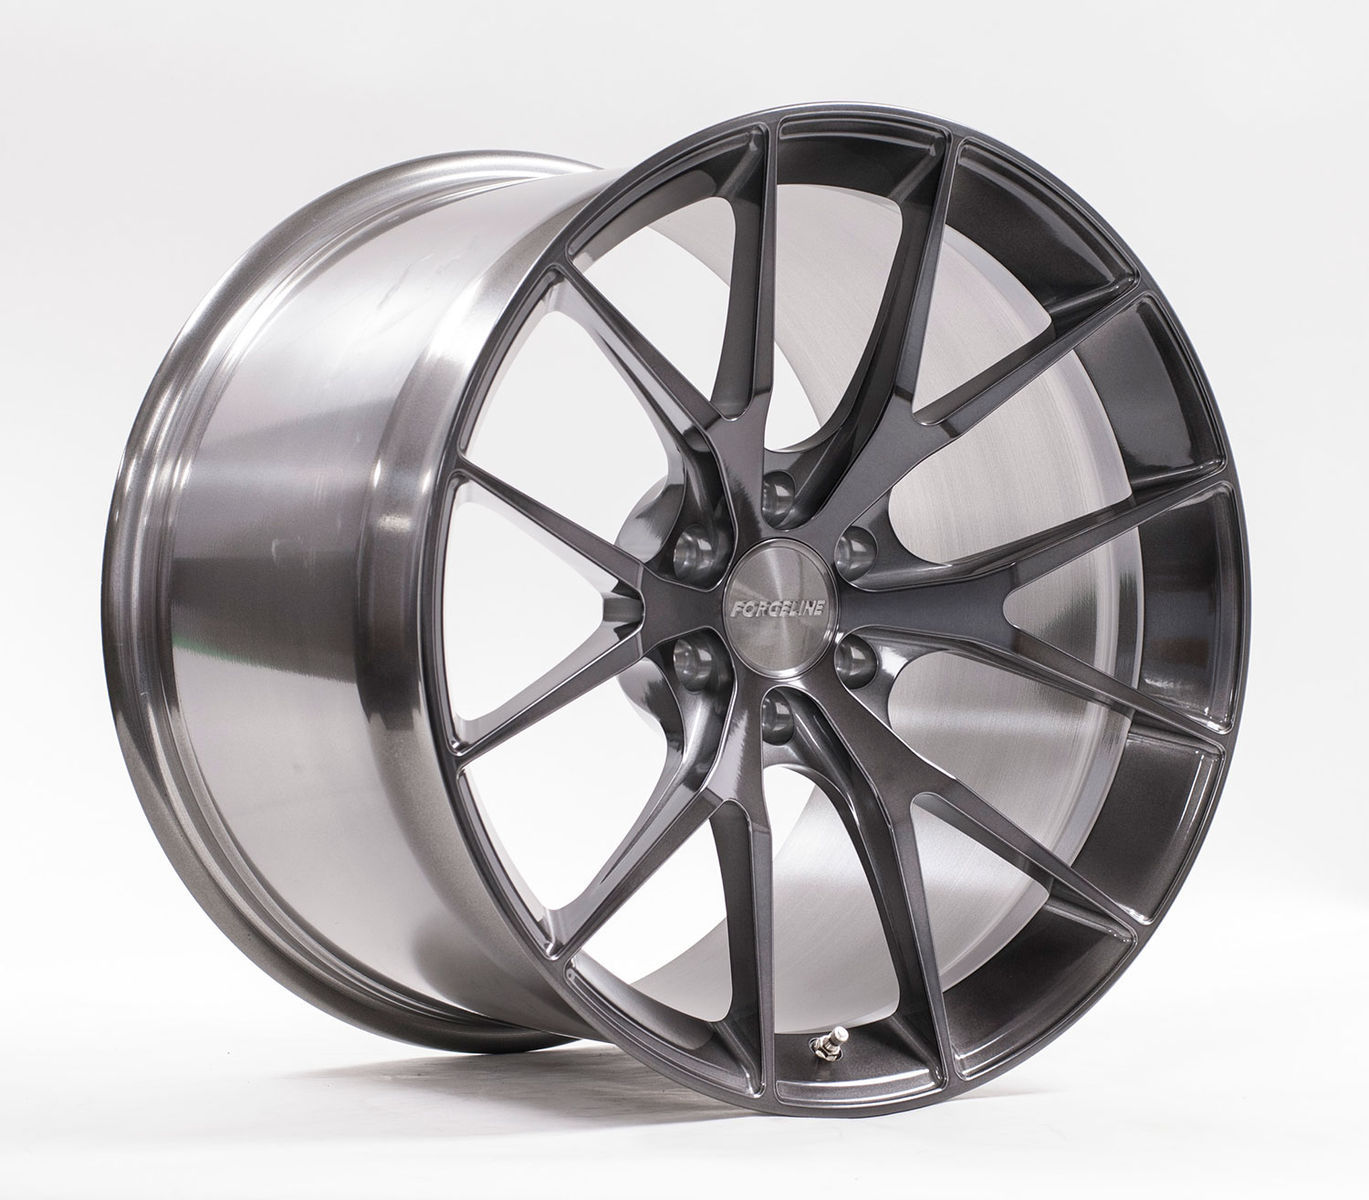 | Our New Forgeline One Piece Forged Monoblock VX1-6 6-Lug Wheel